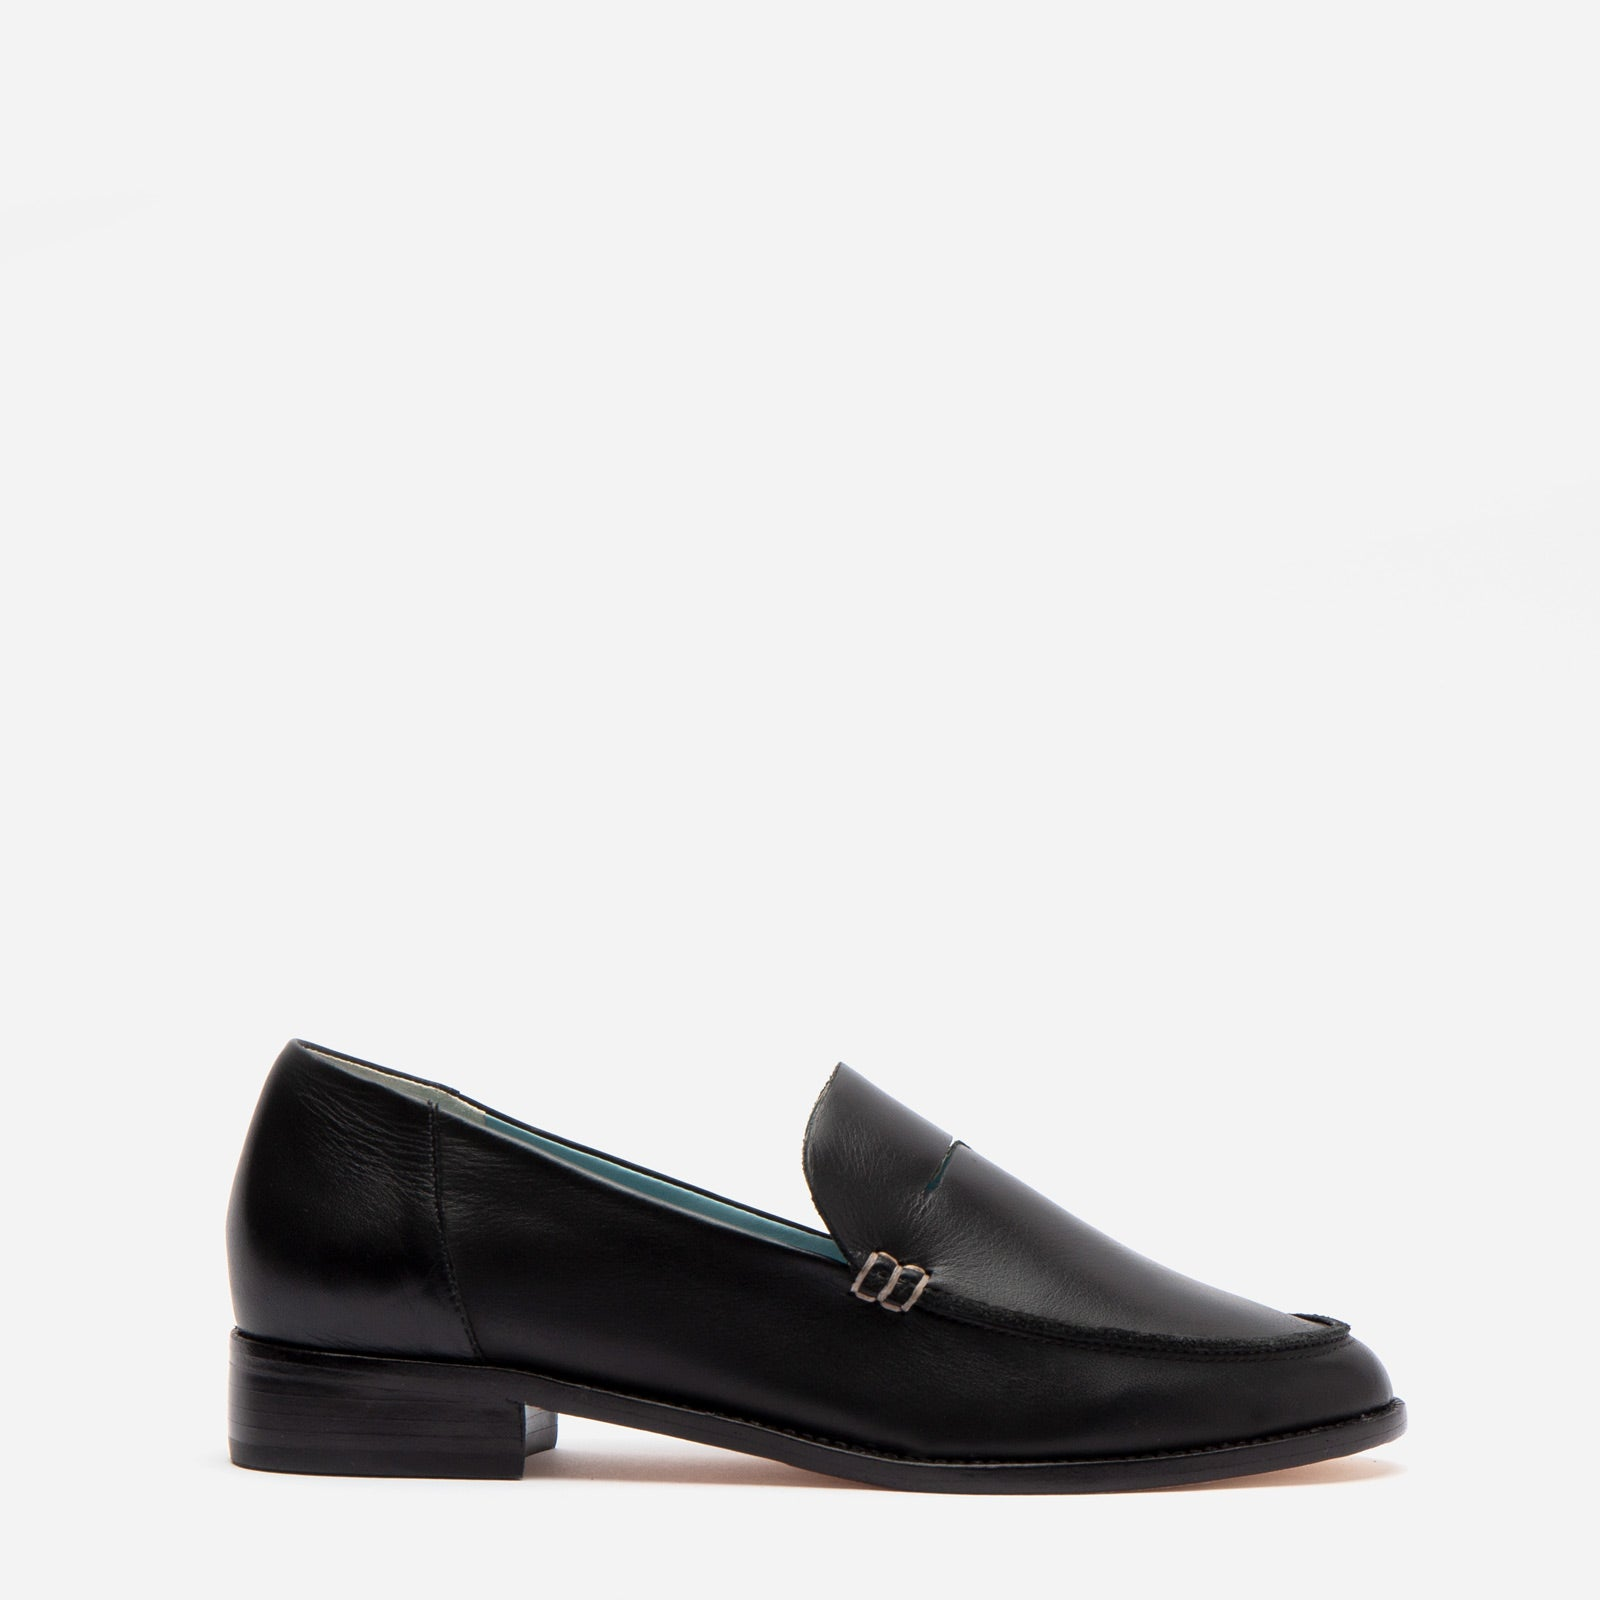 Penny Loafer Vachetta Leather Black - Frances Valentine